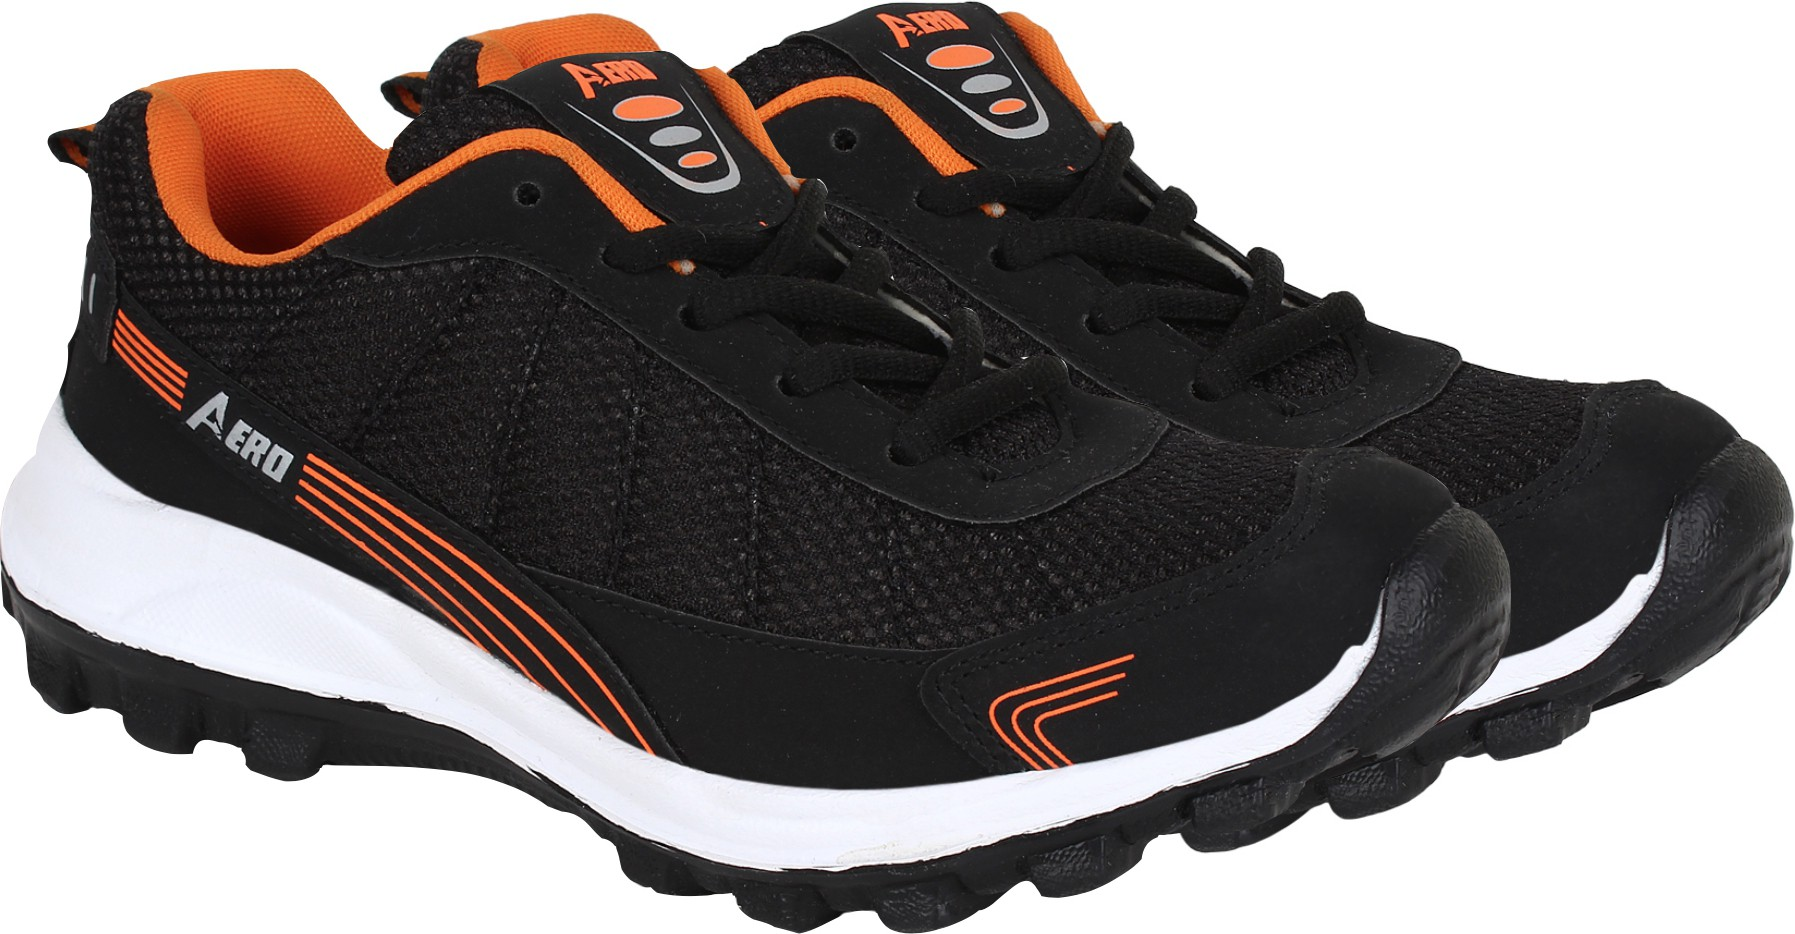 Flipkart - Men's Sports Shoes Aero & more